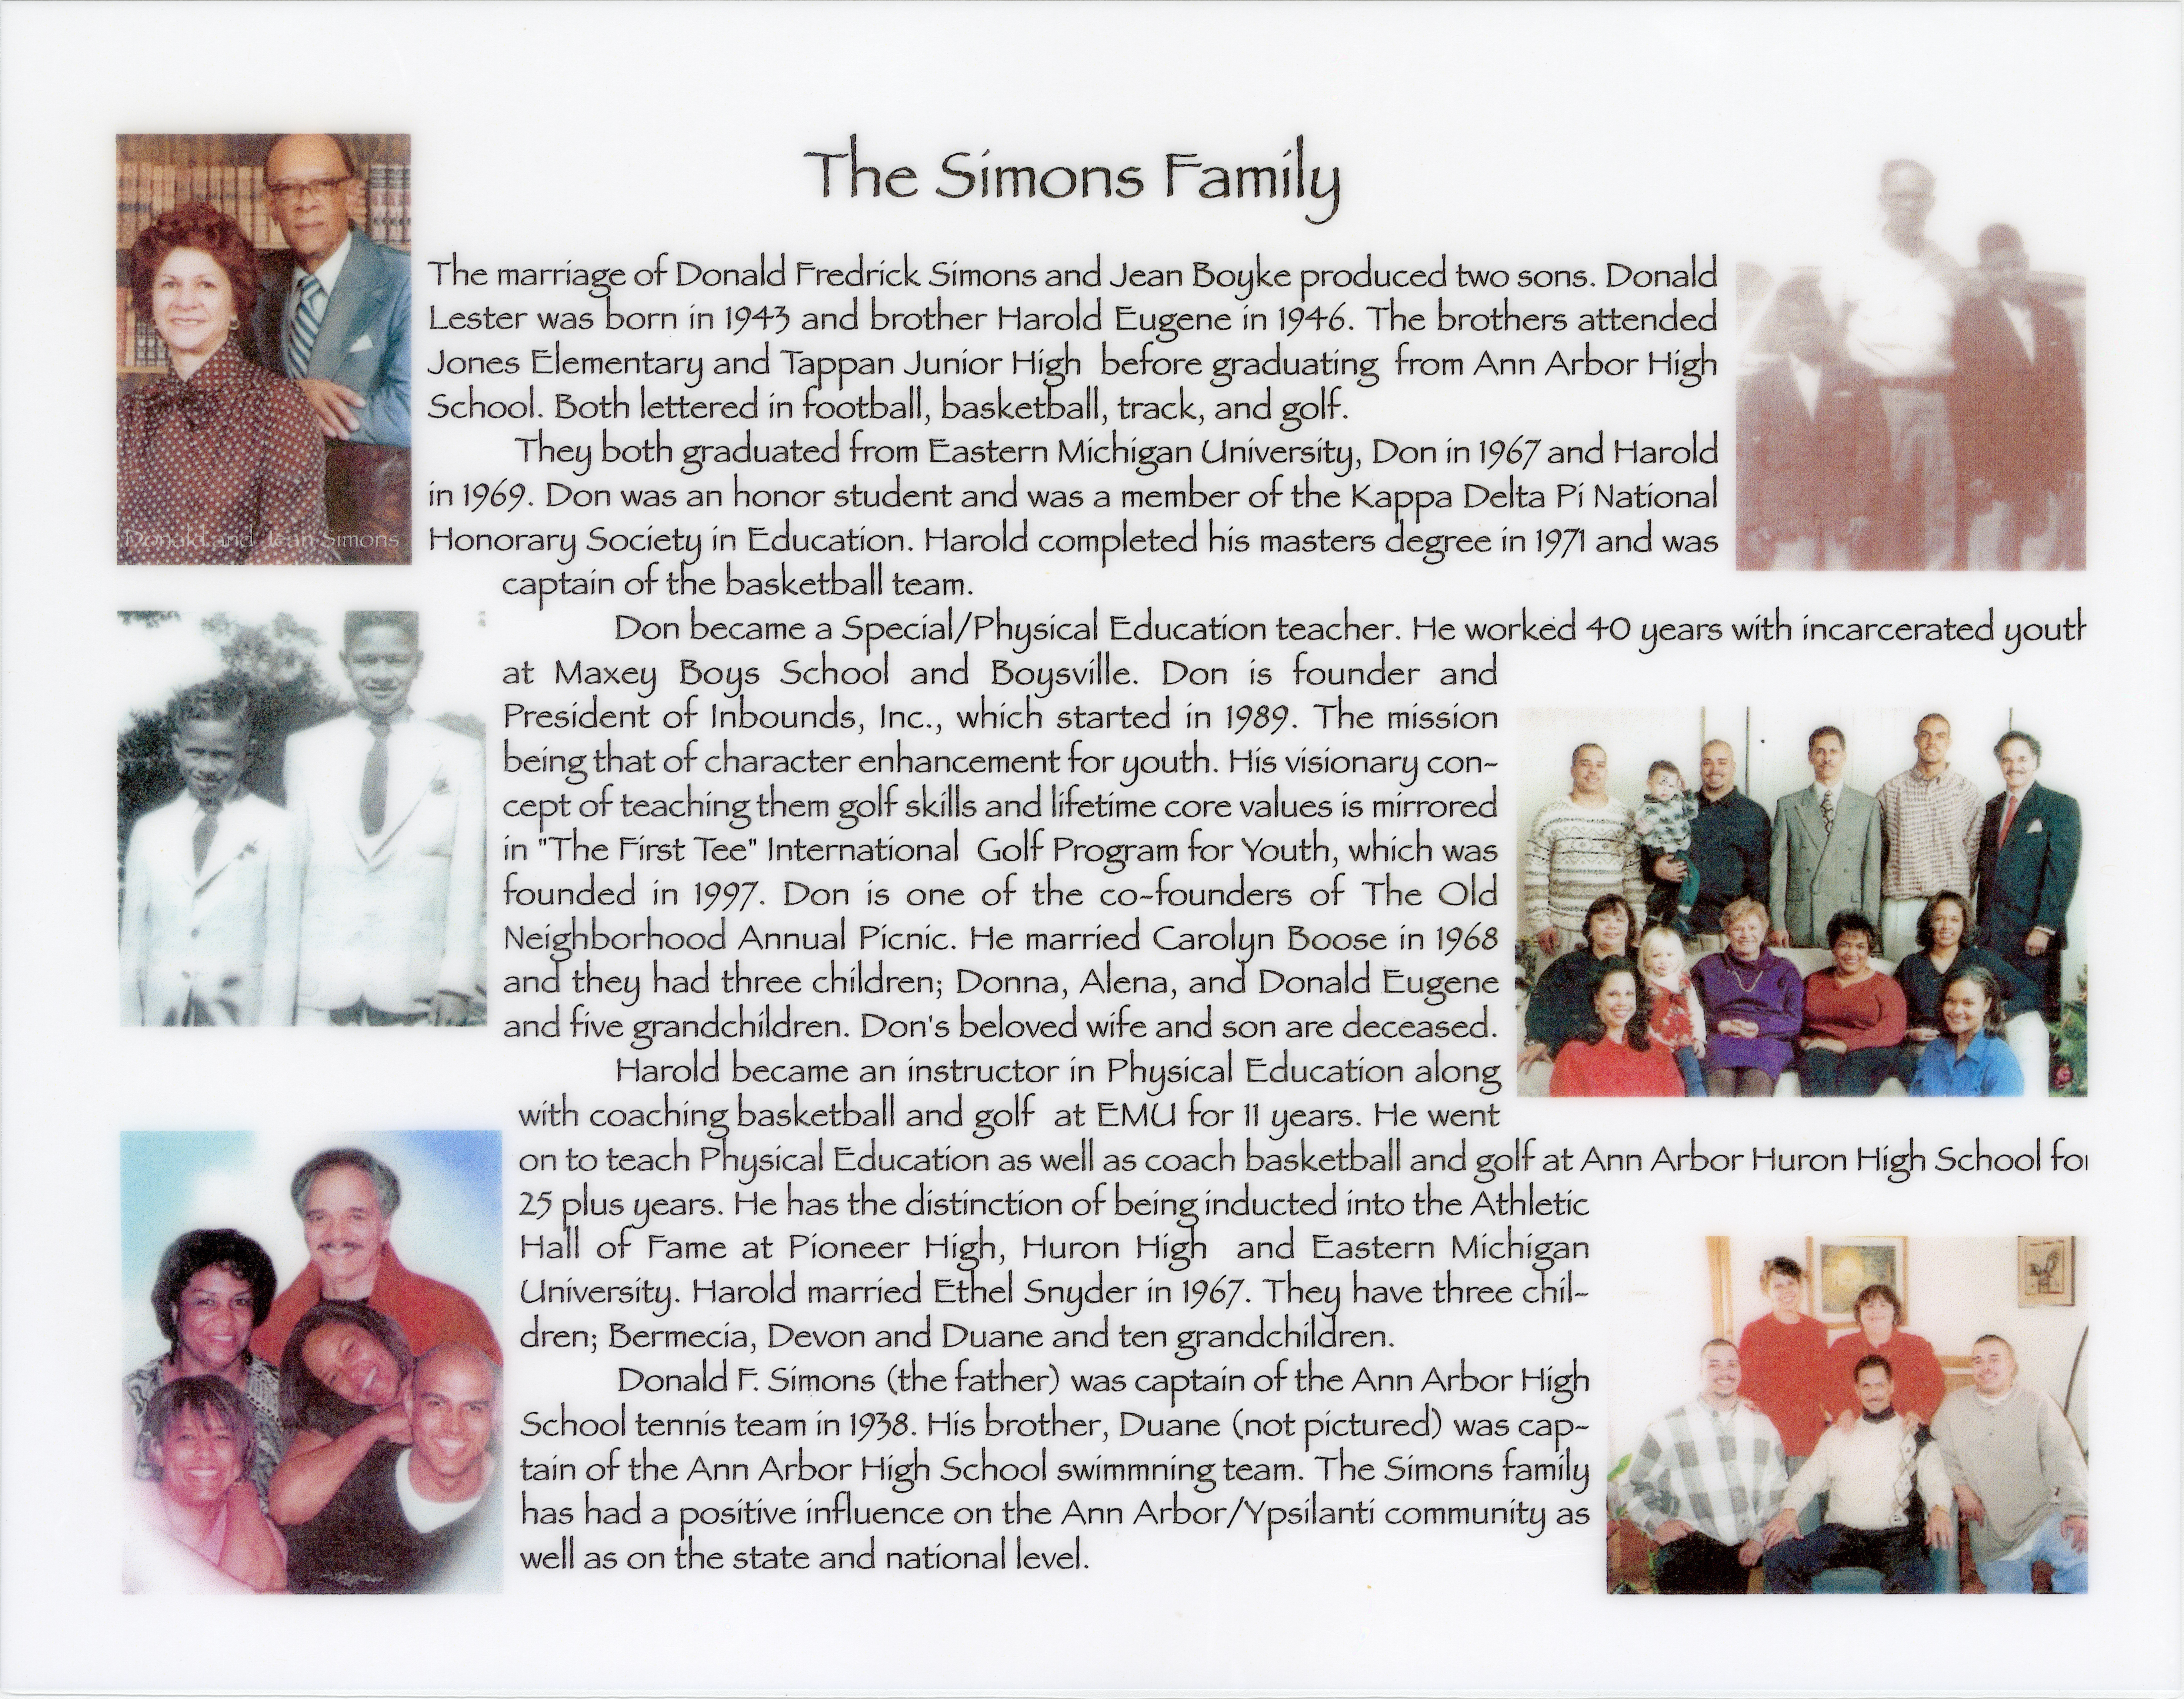 The Simons Family image